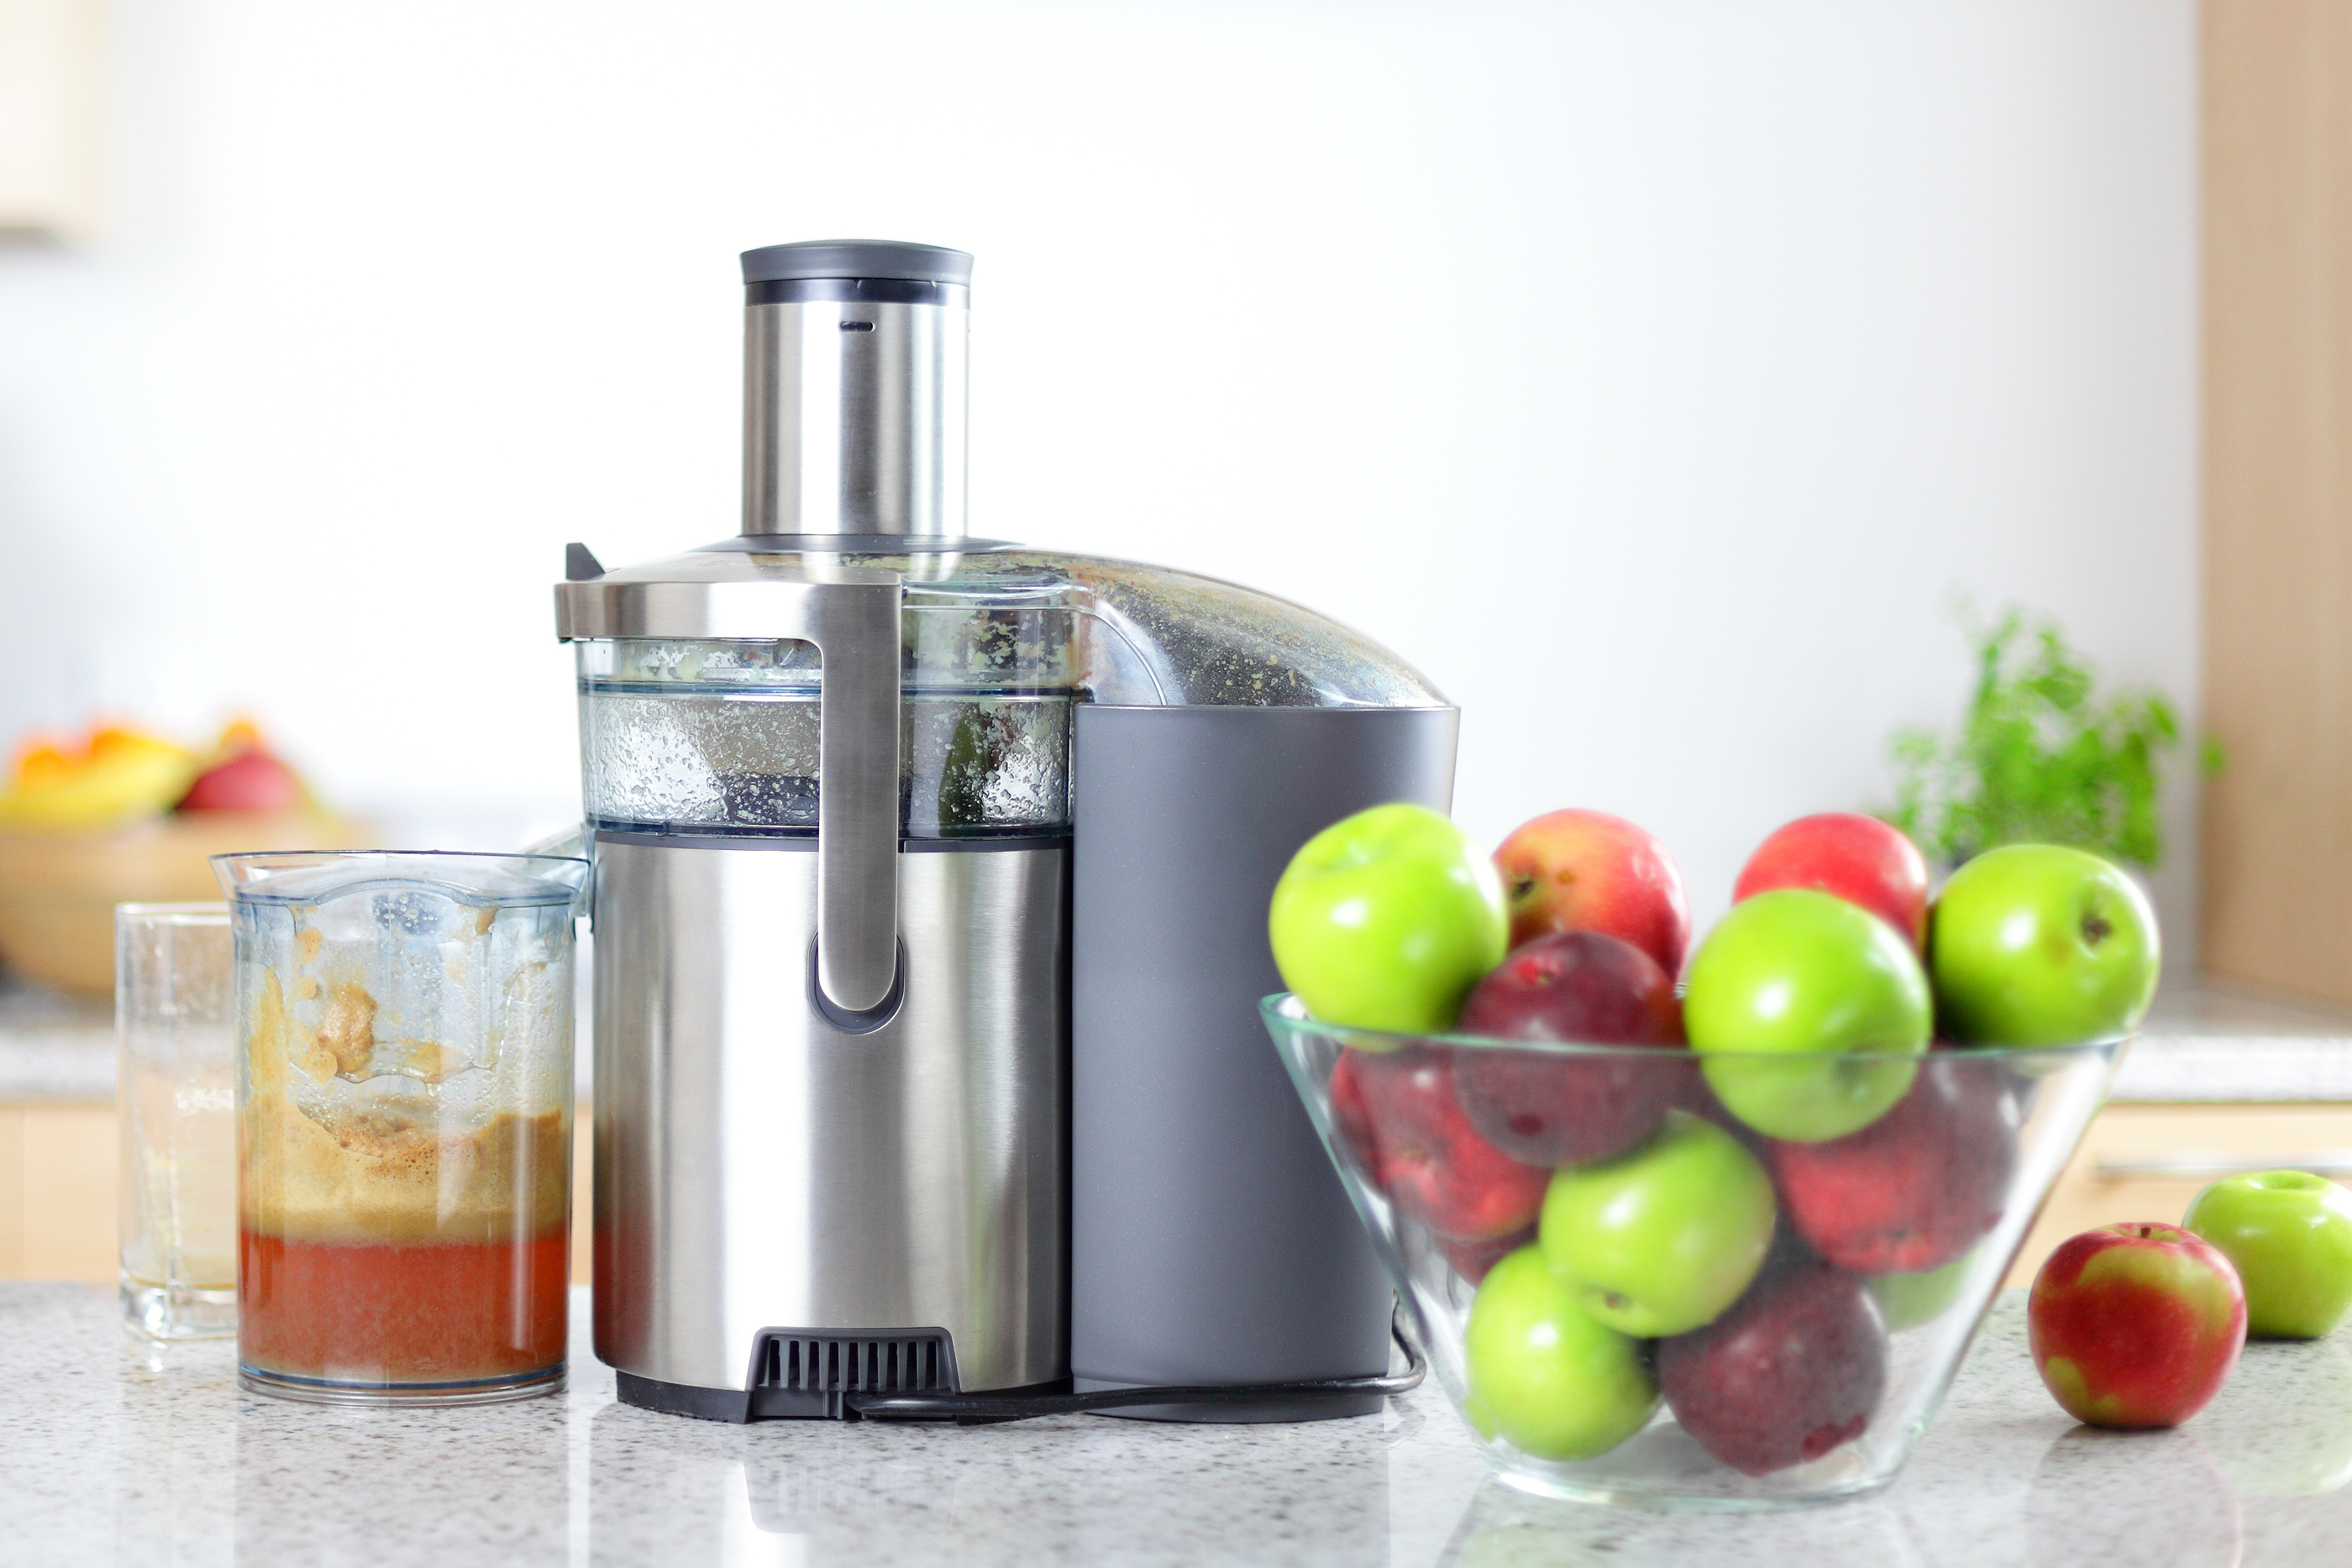 Juicer on kitchen worktop